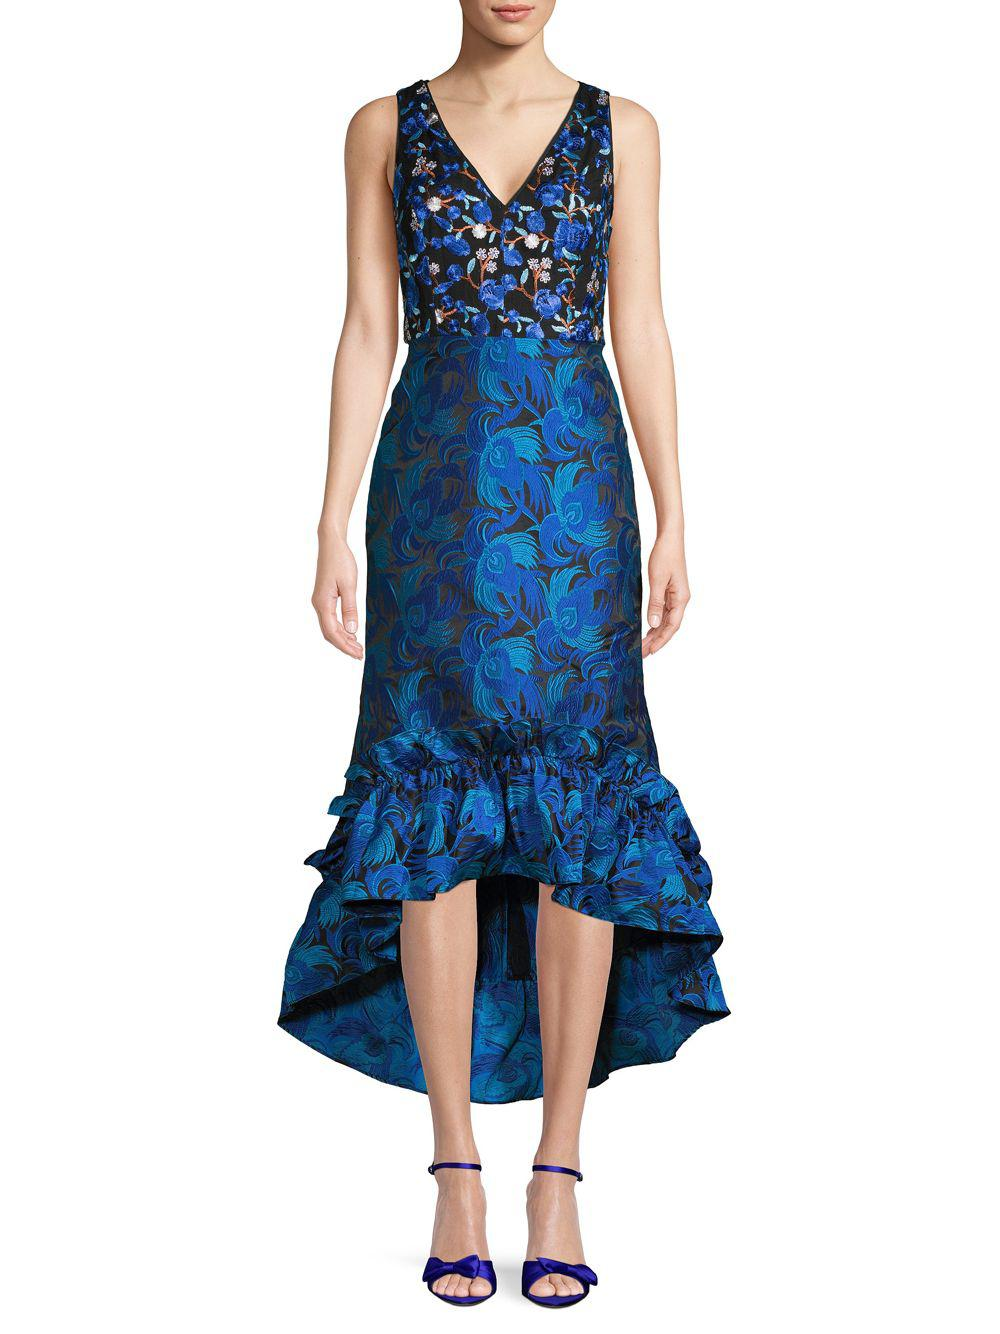 53c4437a206 Belle By Badgley Mischka. Women s Blue Sandrine Embroidered Floral High-low  Sheath Dress